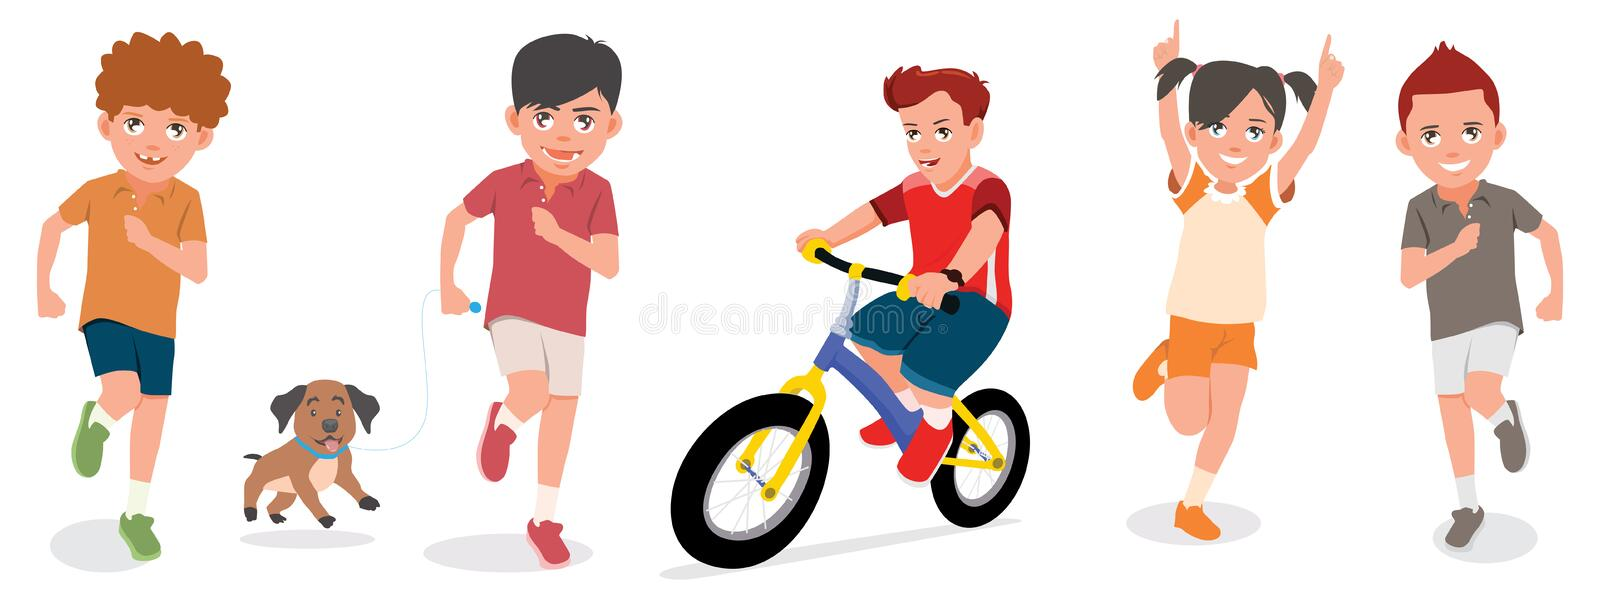 Set Of Children Play With Cheerful Faces Vector Illustration stock illustration